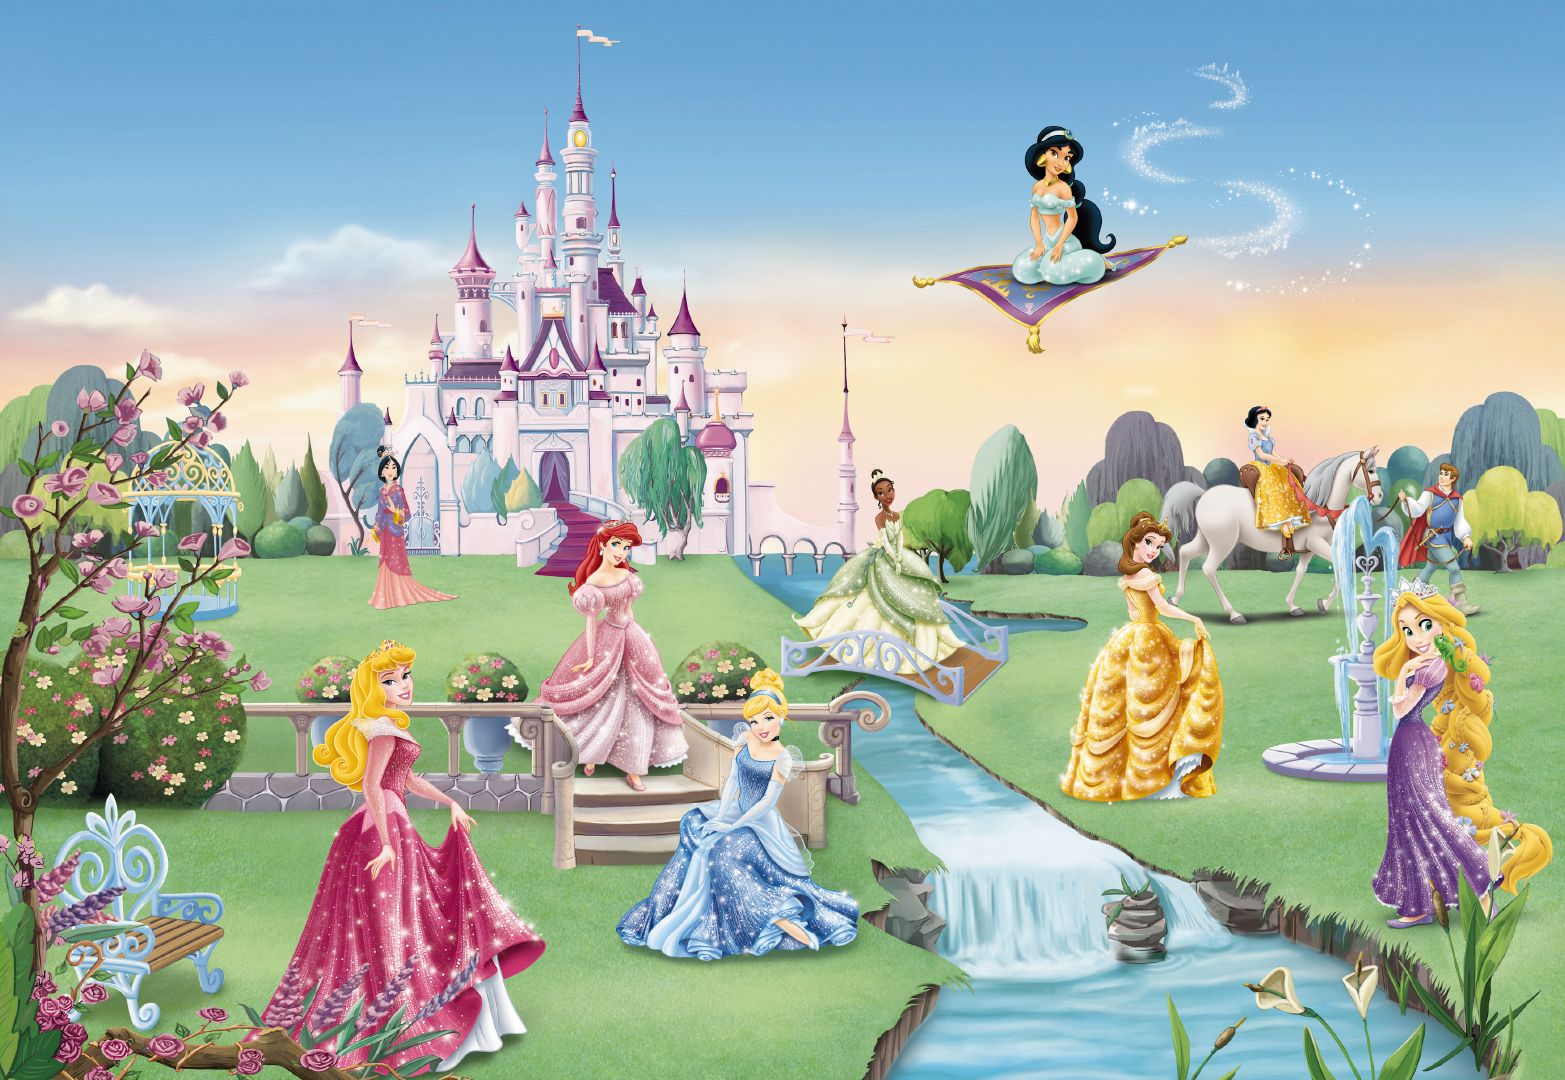 Details about PRINCESS CASTLE Wall Mural photo Wallpaper for children 1565x1080